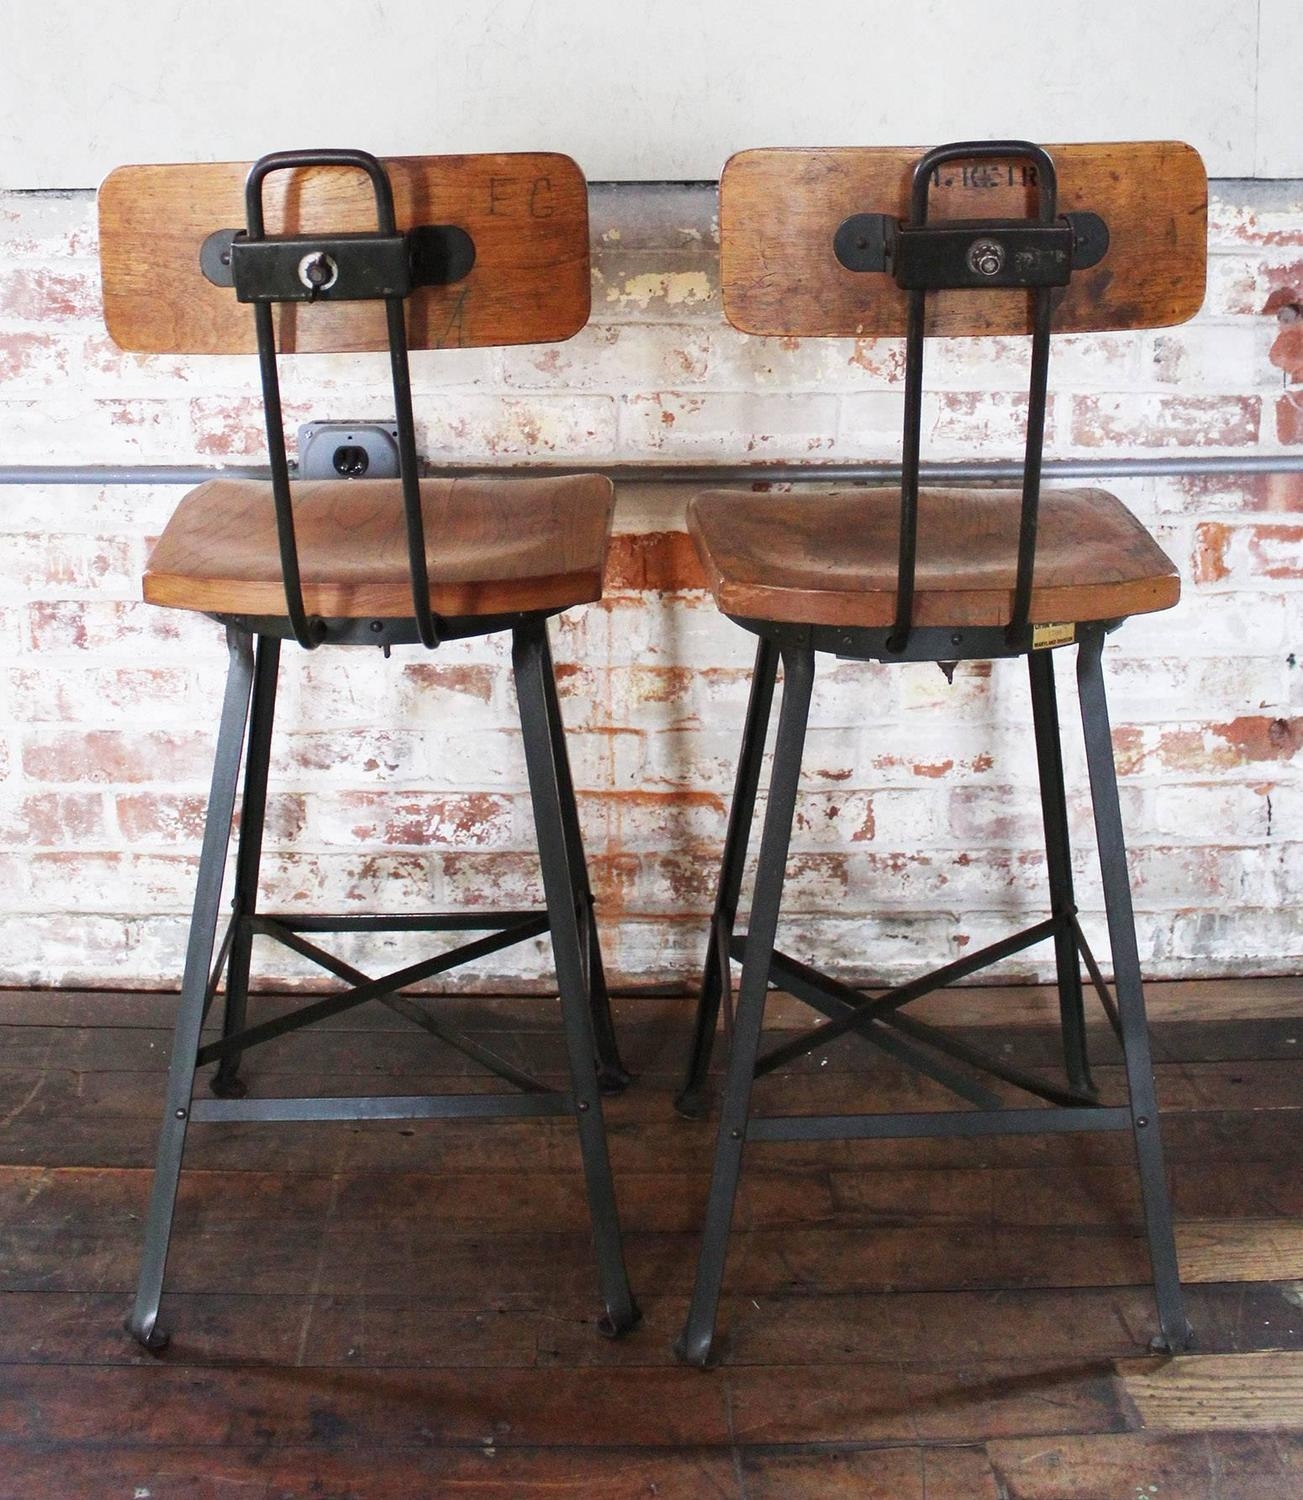 Pair of Vintage Industrial Wood and Metal Bar Stools For  : pairvintageindustrialwoodmetalstoolsadjustablegetbackincset27z from www.1stdibs.com size 1303 x 1500 jpeg 263kB